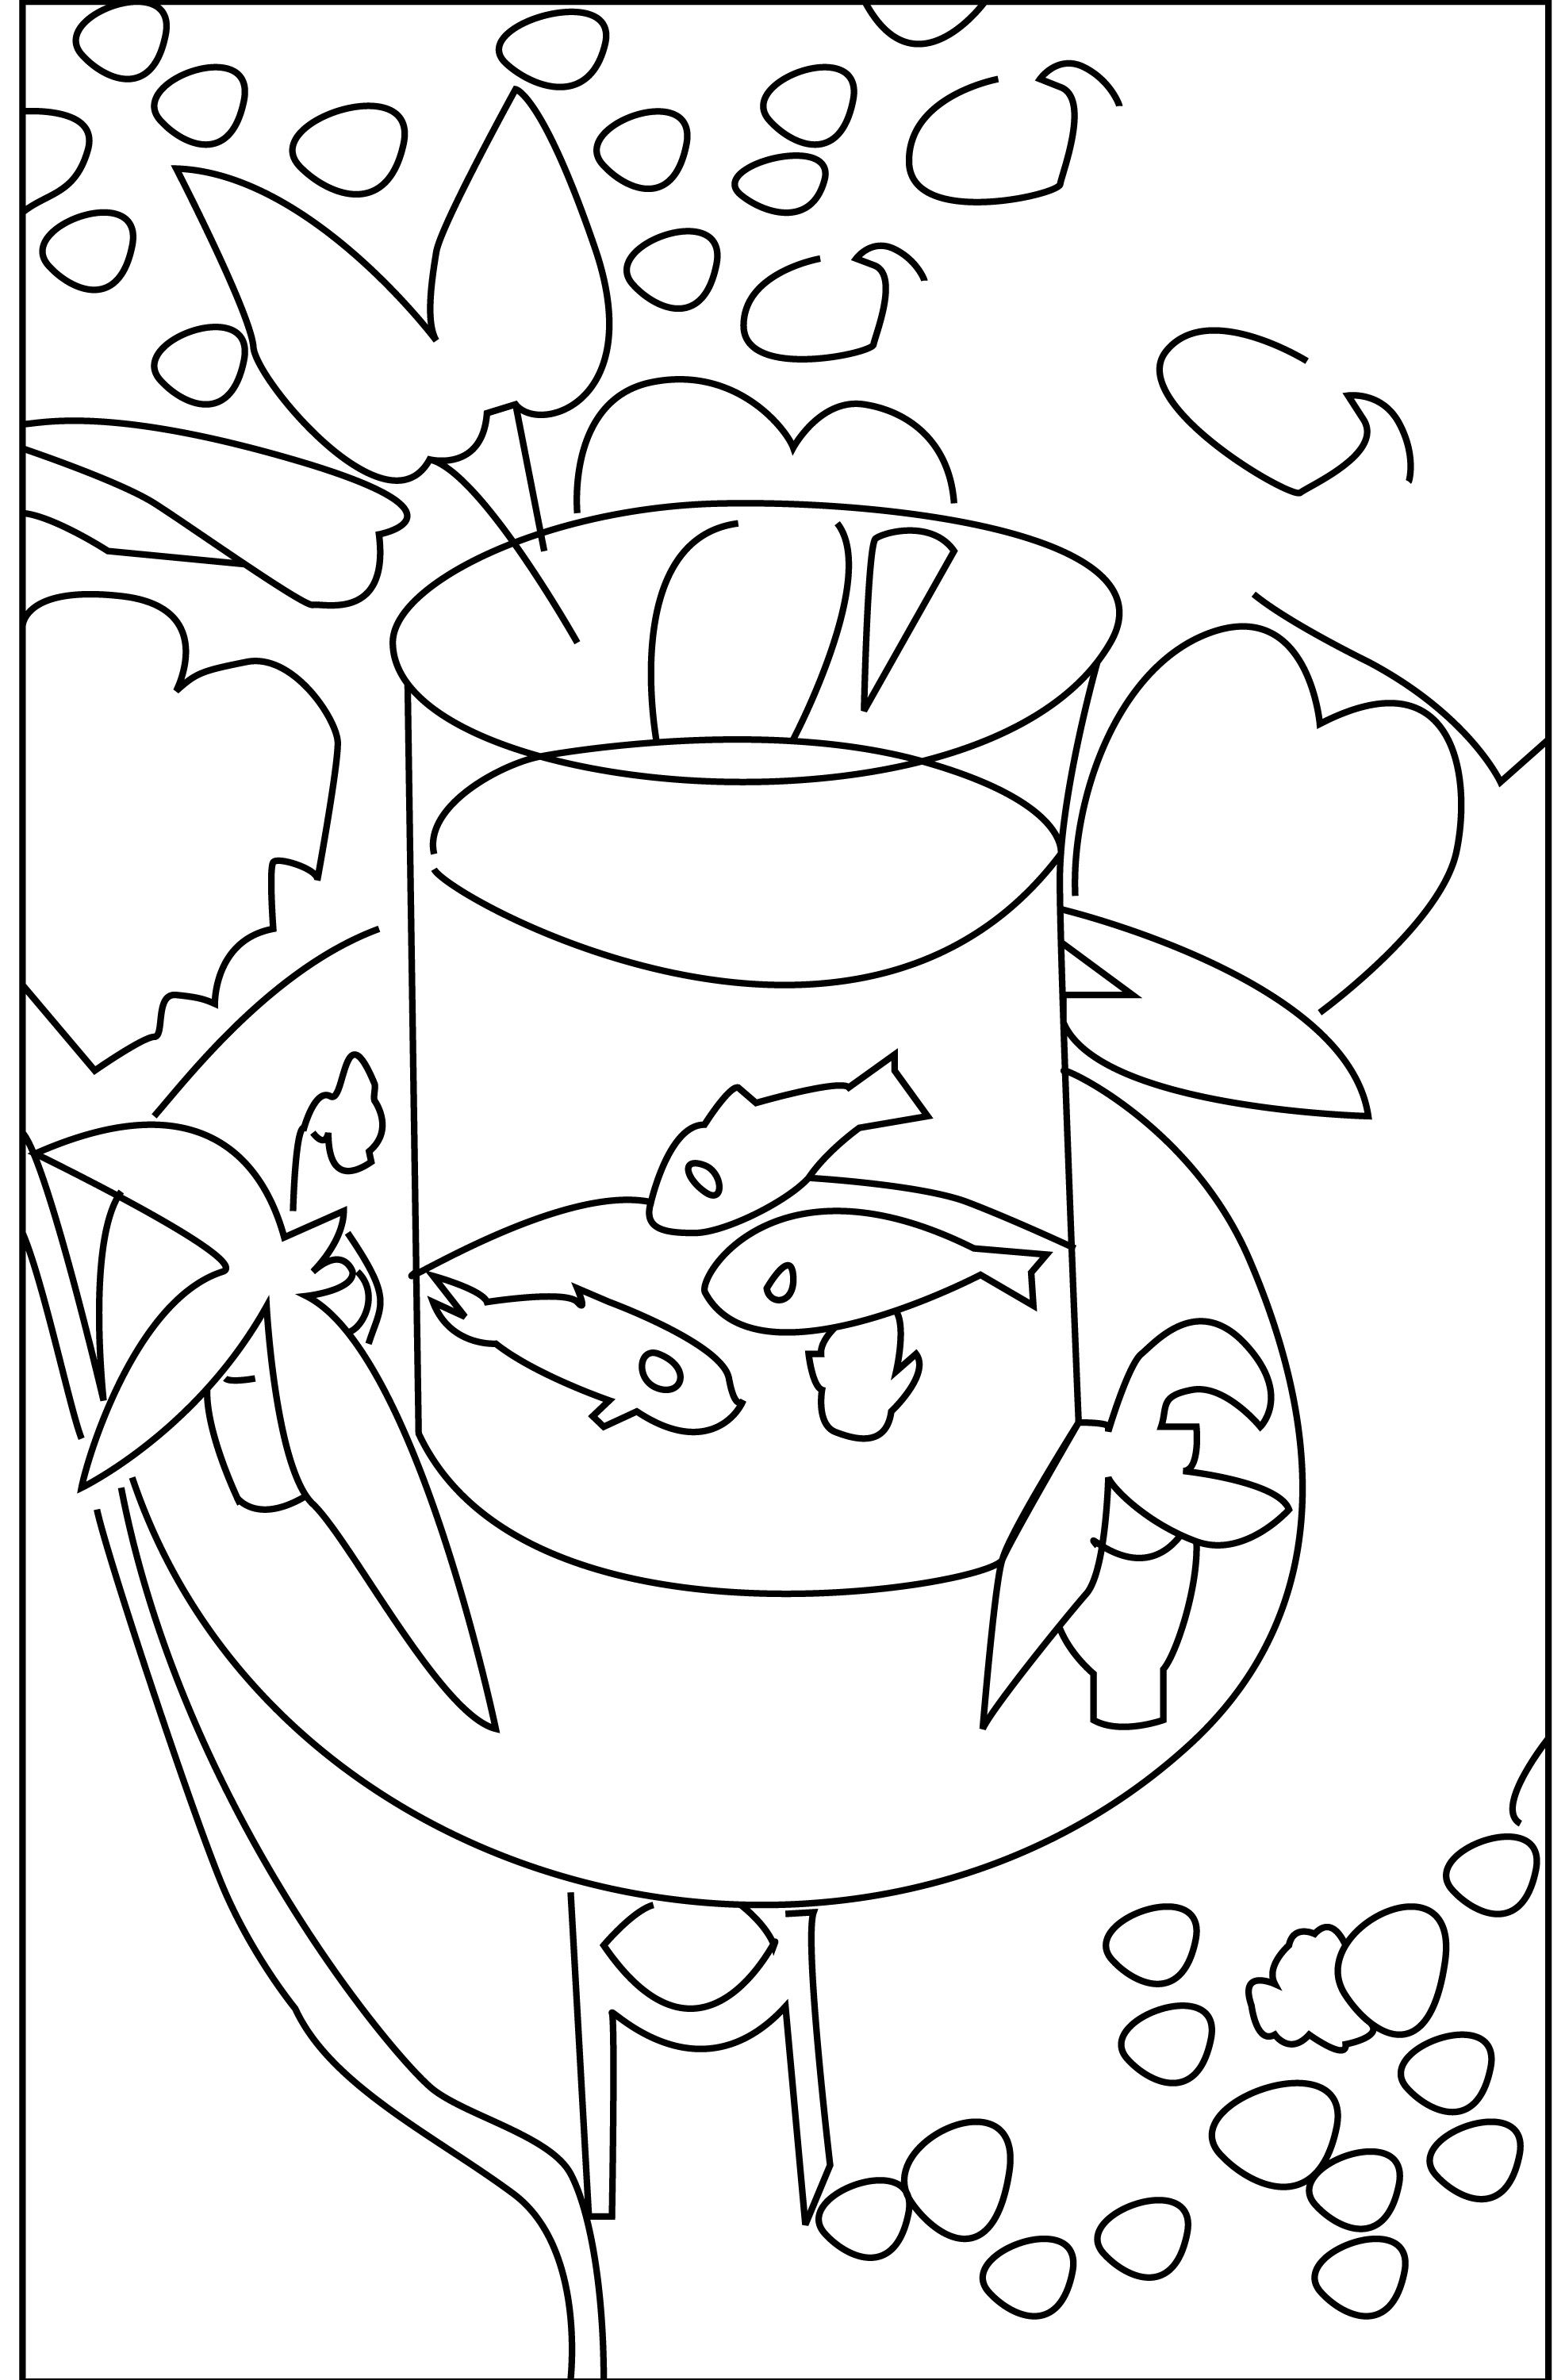 Coloring Book : Matisse\'s Gold Fish | Art Matisse/physics color and ...